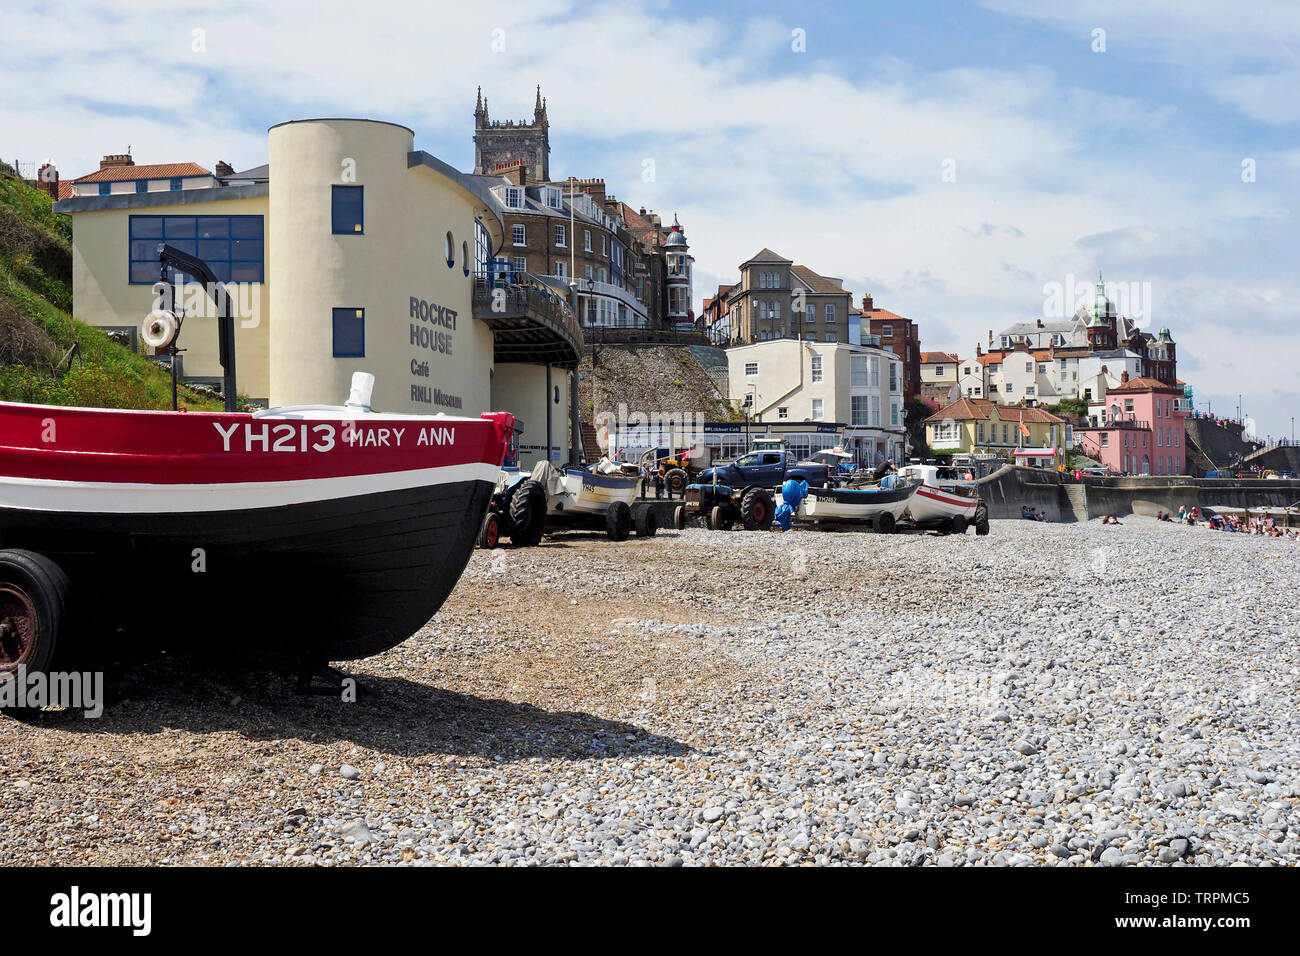 Fishing boats on the shingle beach in Cromer,Norfolk with the historic holiday resort town and picturesque promenade in the background. Stock Photo